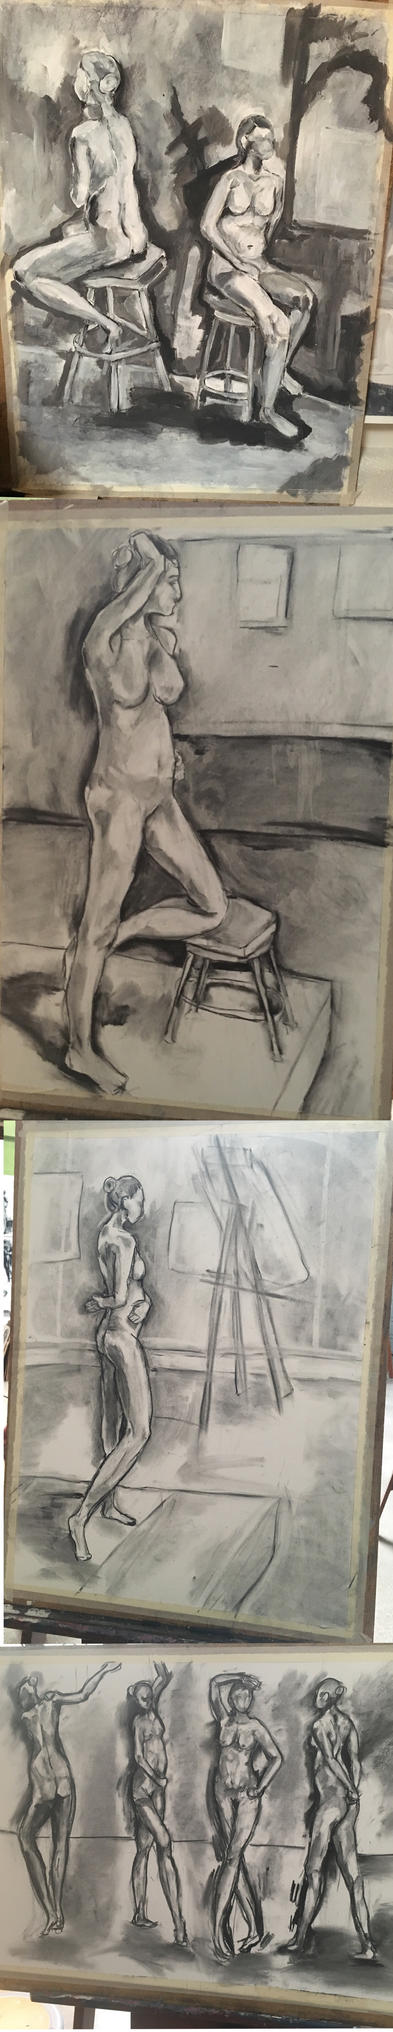 Figure drawings by CapeClawless